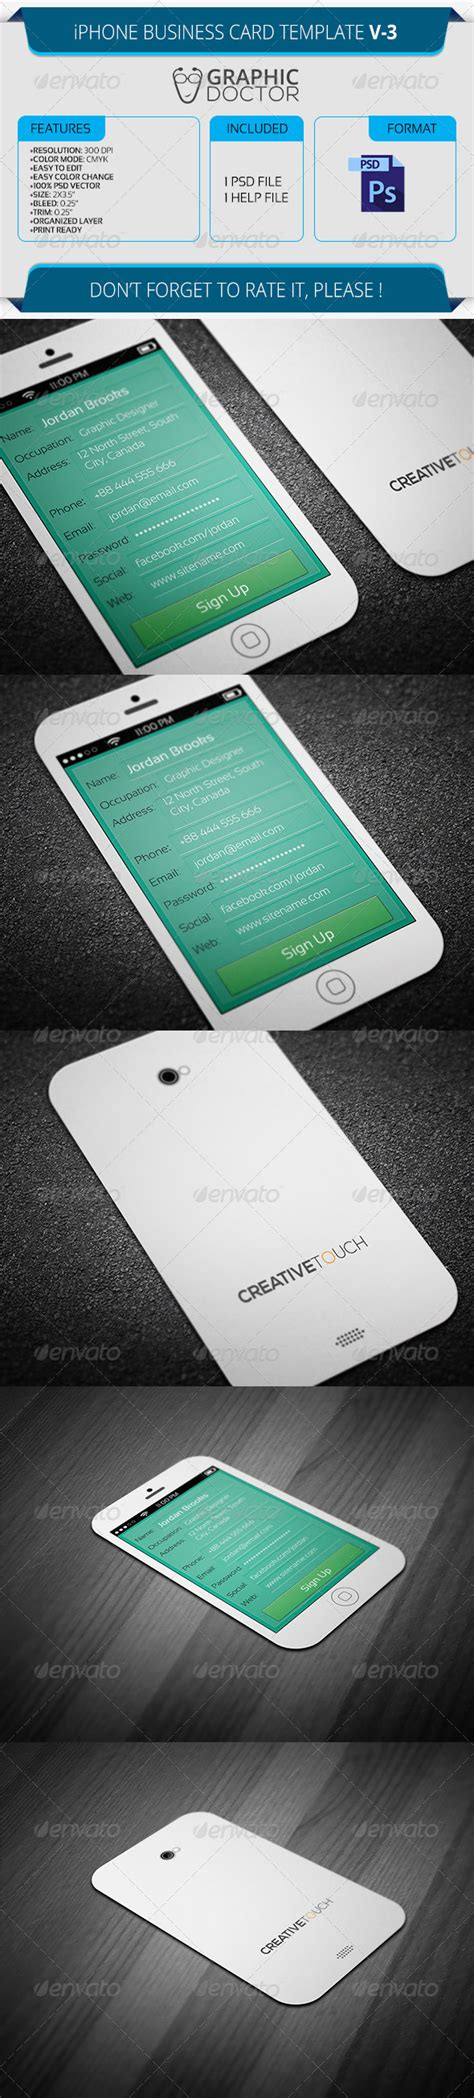 iphone business card template free iphone business card template v 3 by graphicdoctor